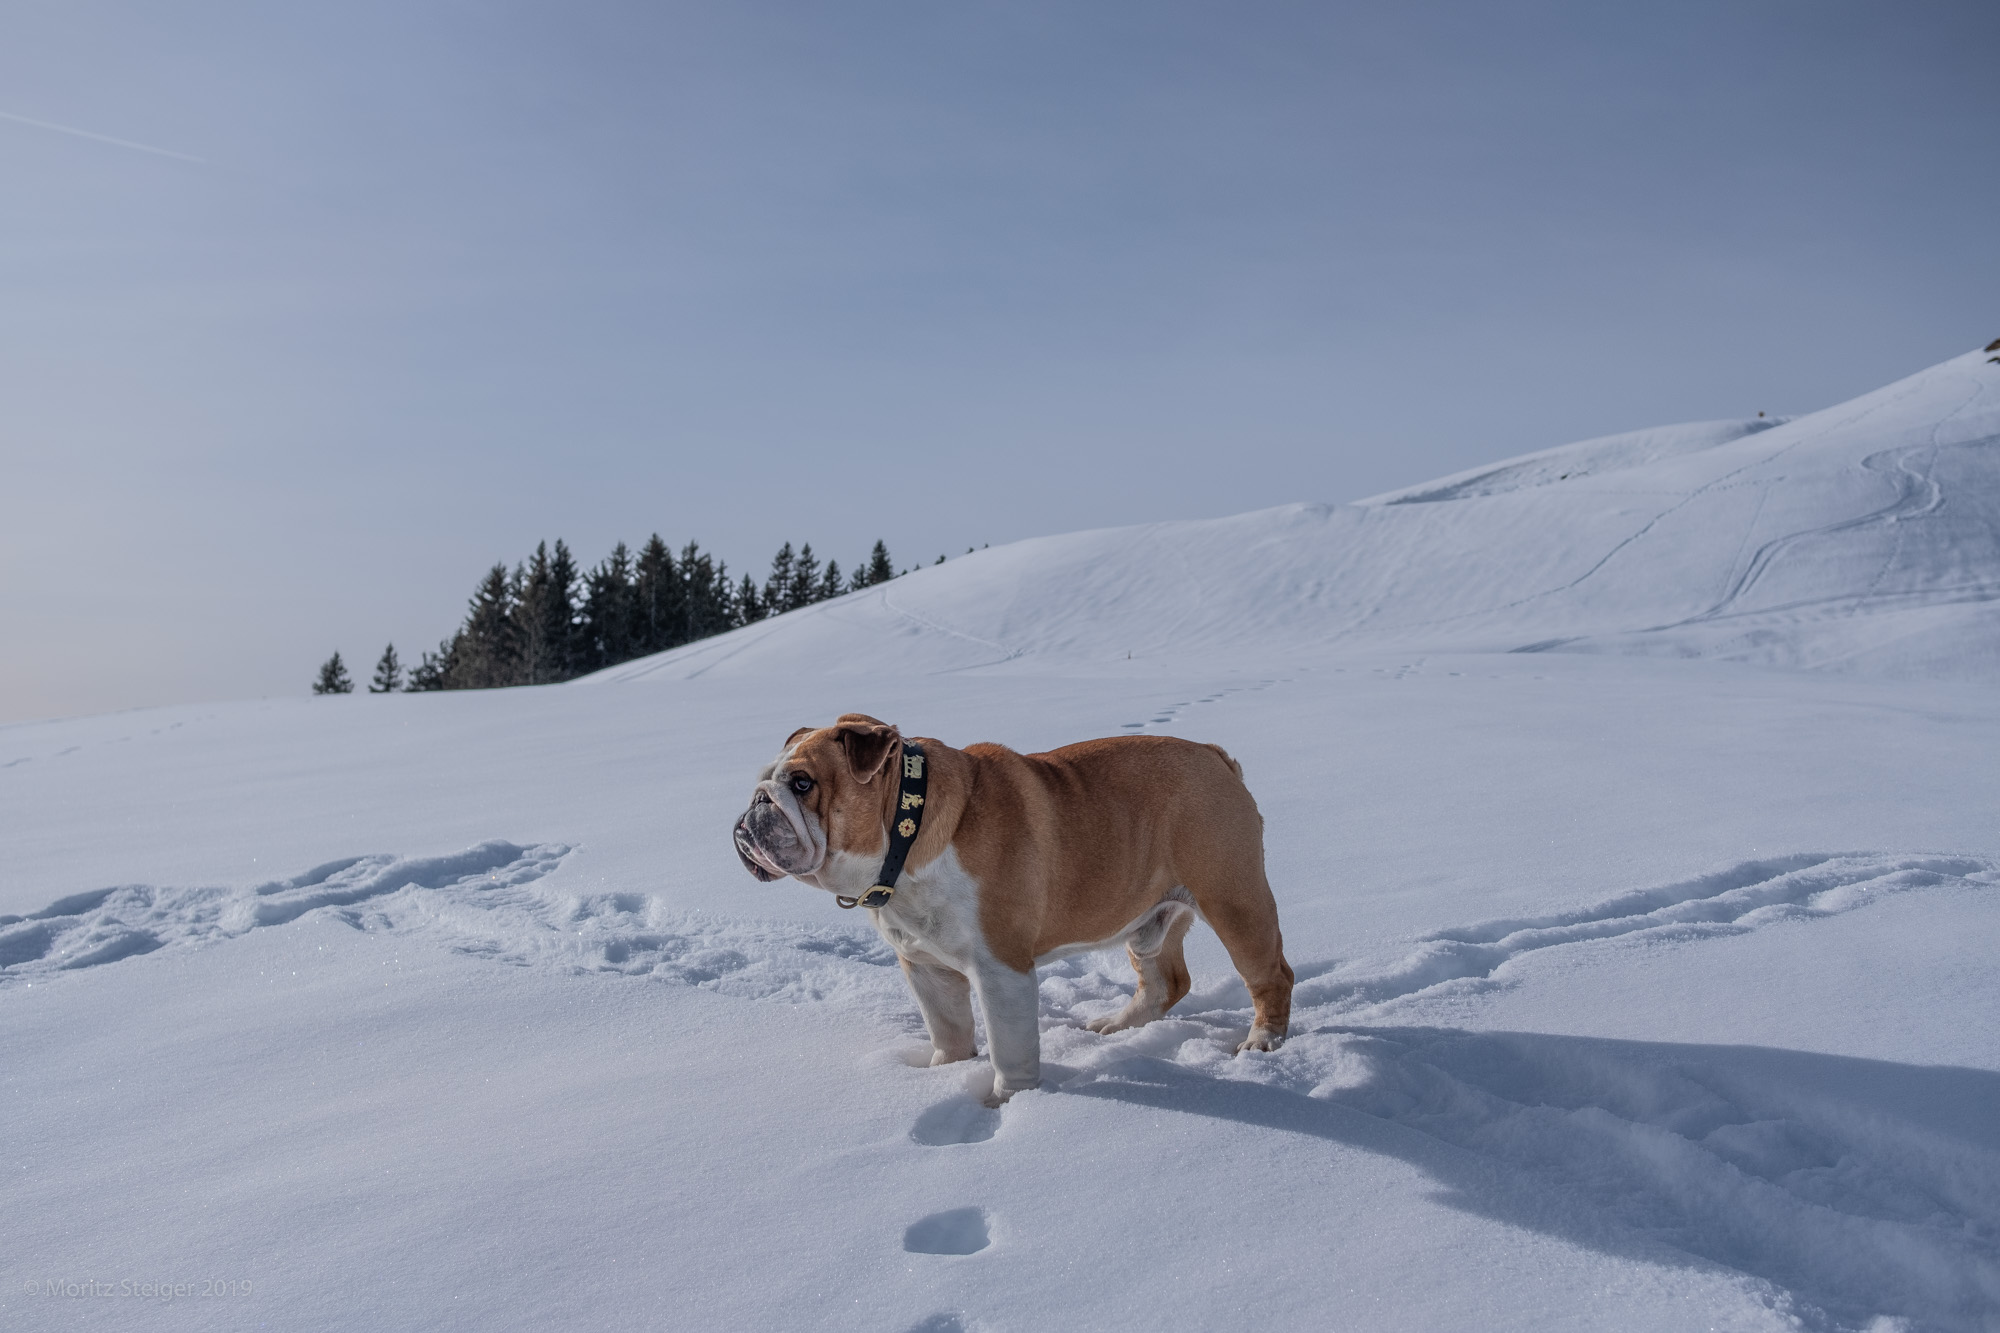 Crossroads, where now? Rudy bulldog in snow